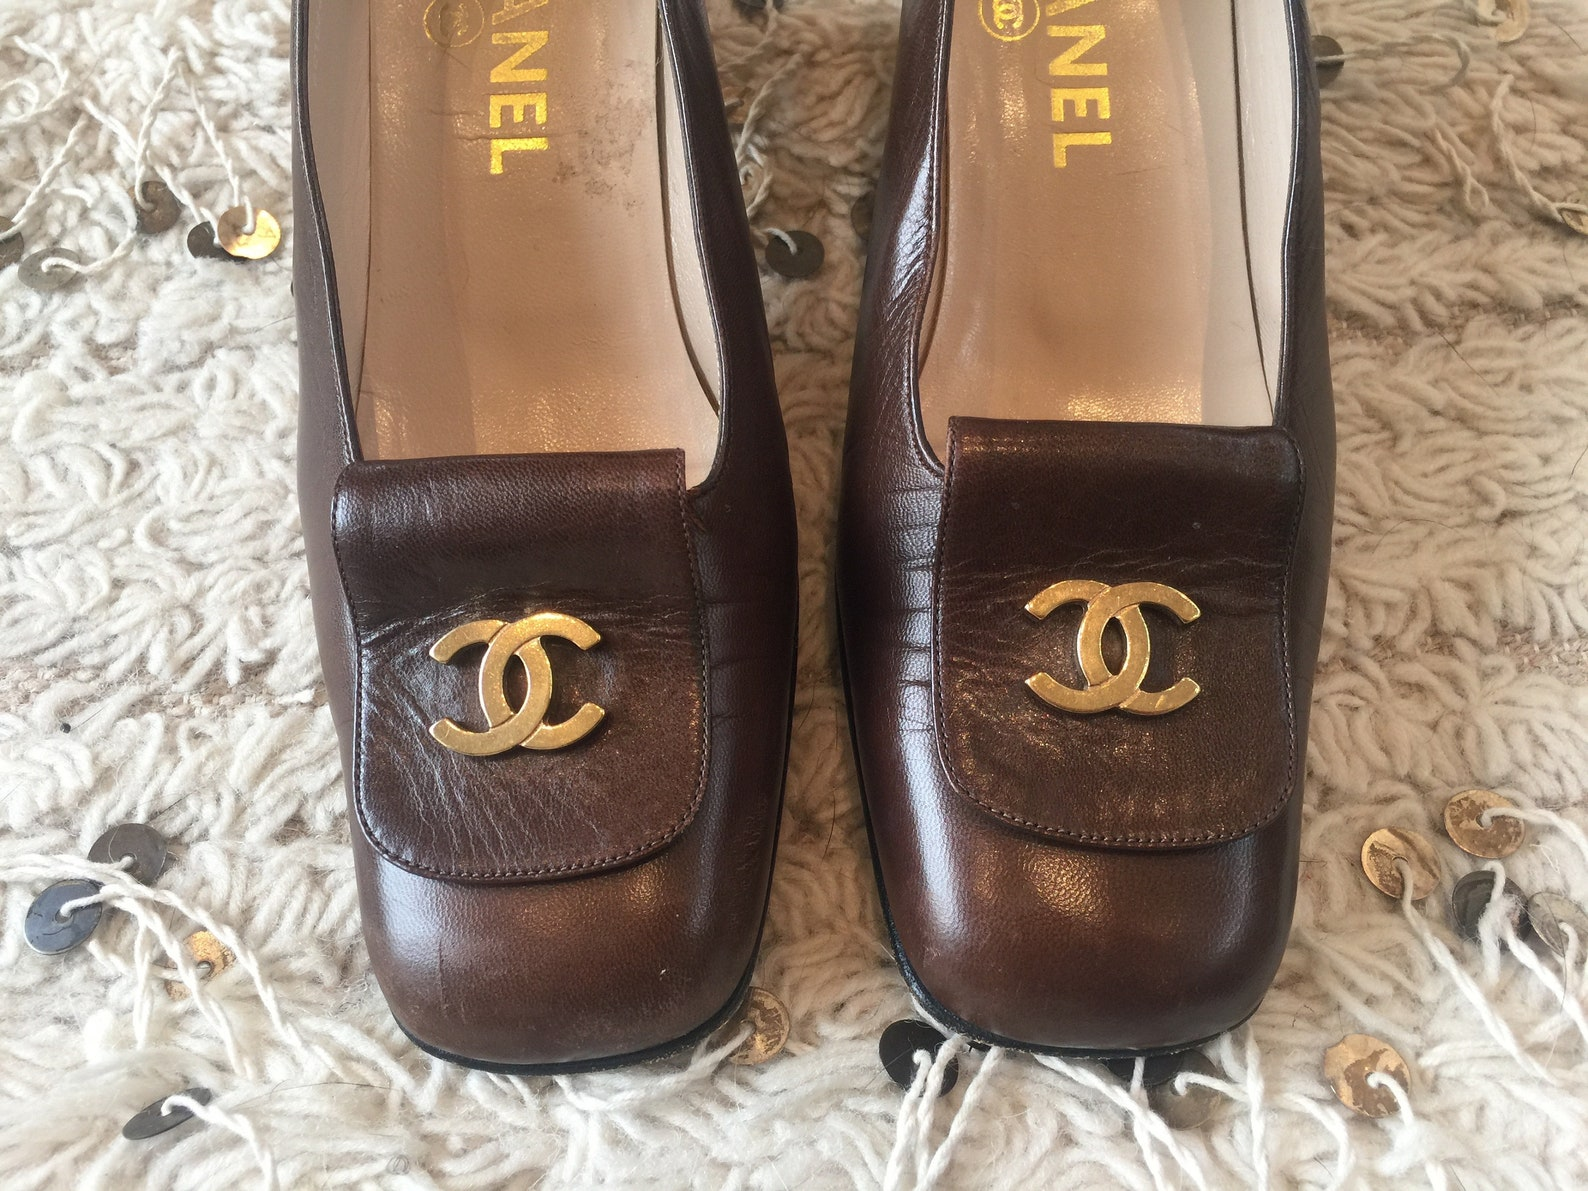 vintage chanel cc metal logo brown leather loafers heels driving shoes smoking slippers ballet flats 37.5 us 7 - 7.5